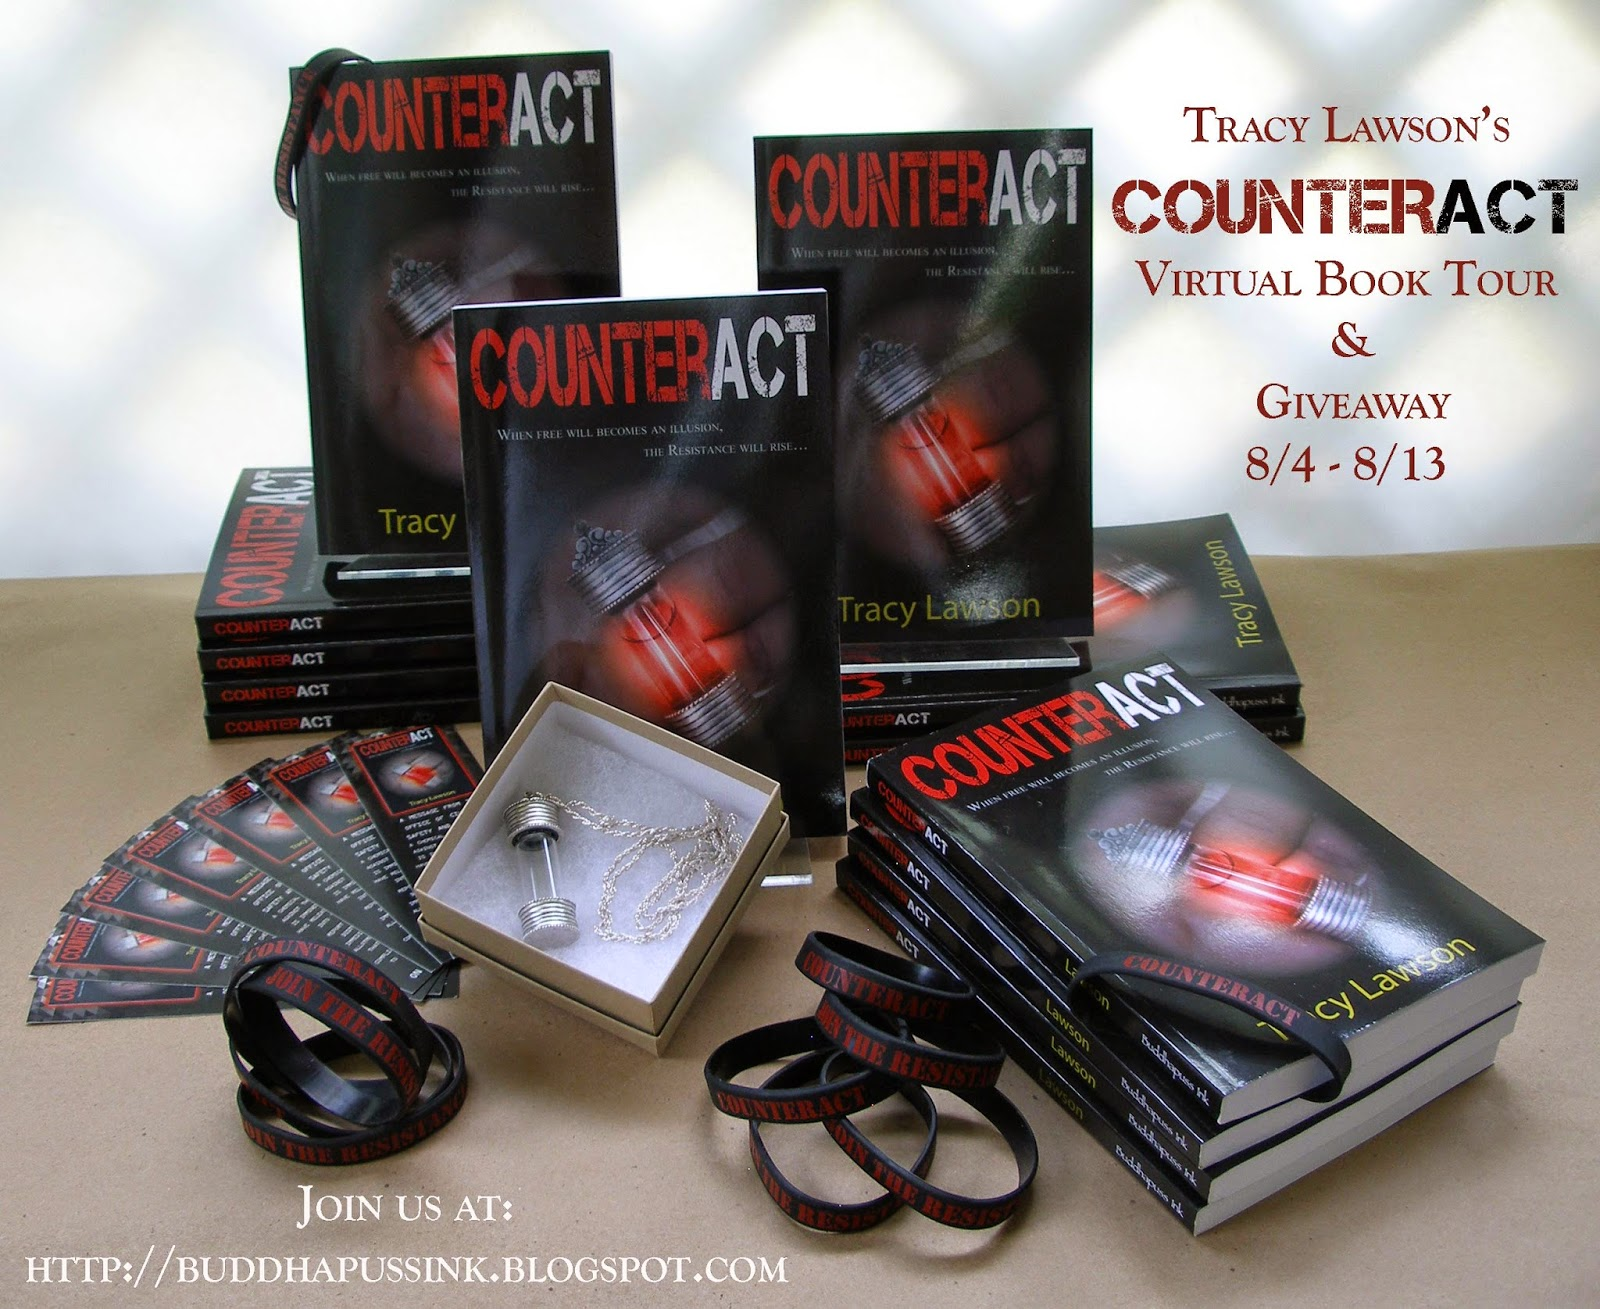 http://www.amazon.com/Counteract-Resistance-Series-Book-1/dp/1941523013/ref=sr_1_cc_1?s=aps&ie=UTF8&qid=1406833325&sr=1-1-catcorr&keywords=buddhapuss+ink